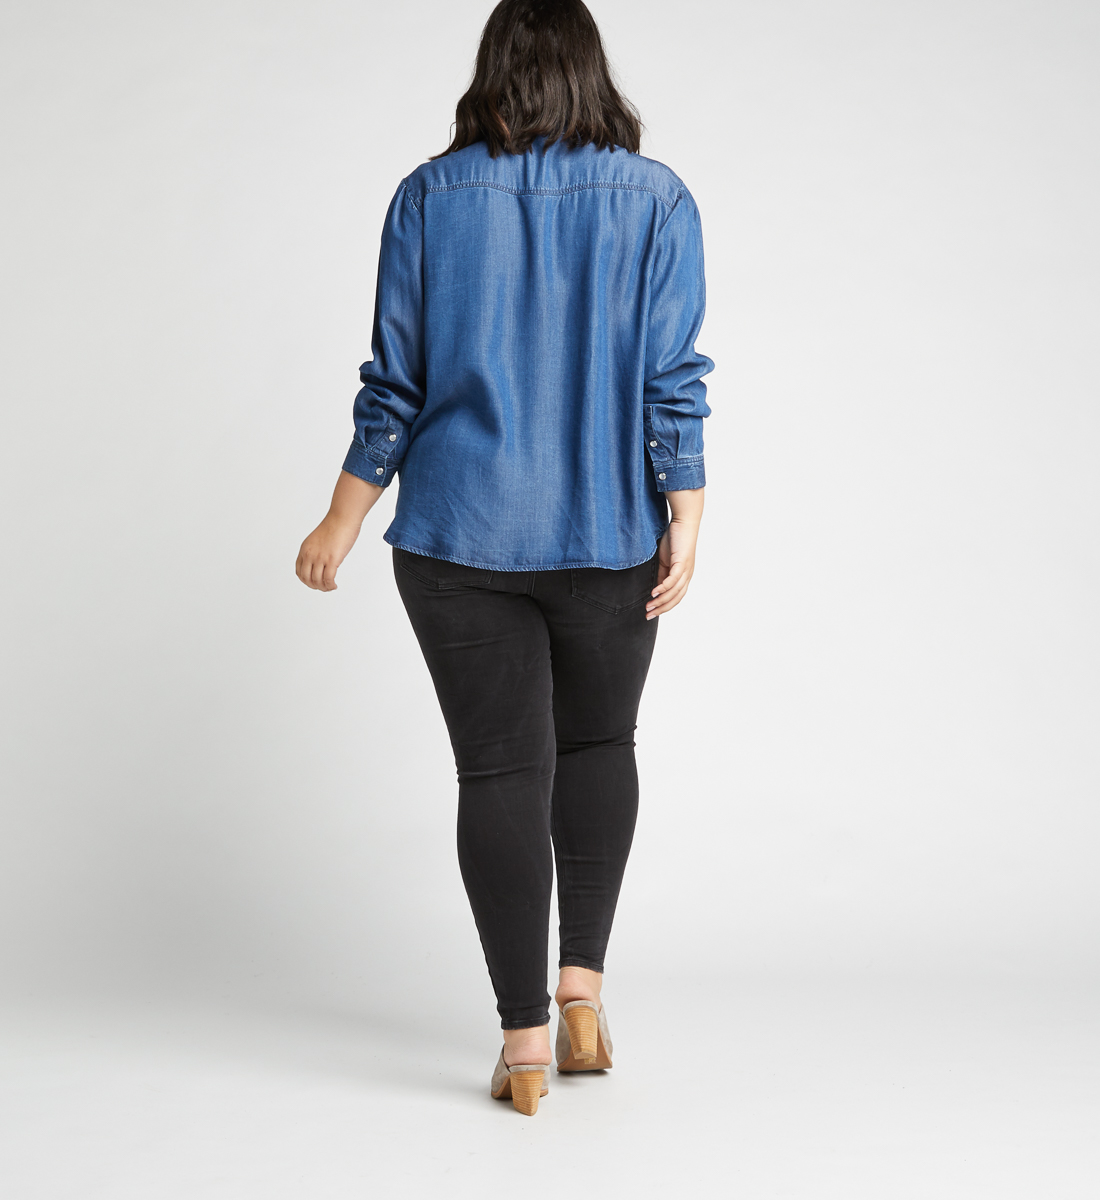 Saralyn Puff-Sleeve Denim Shirt,Indigo Side